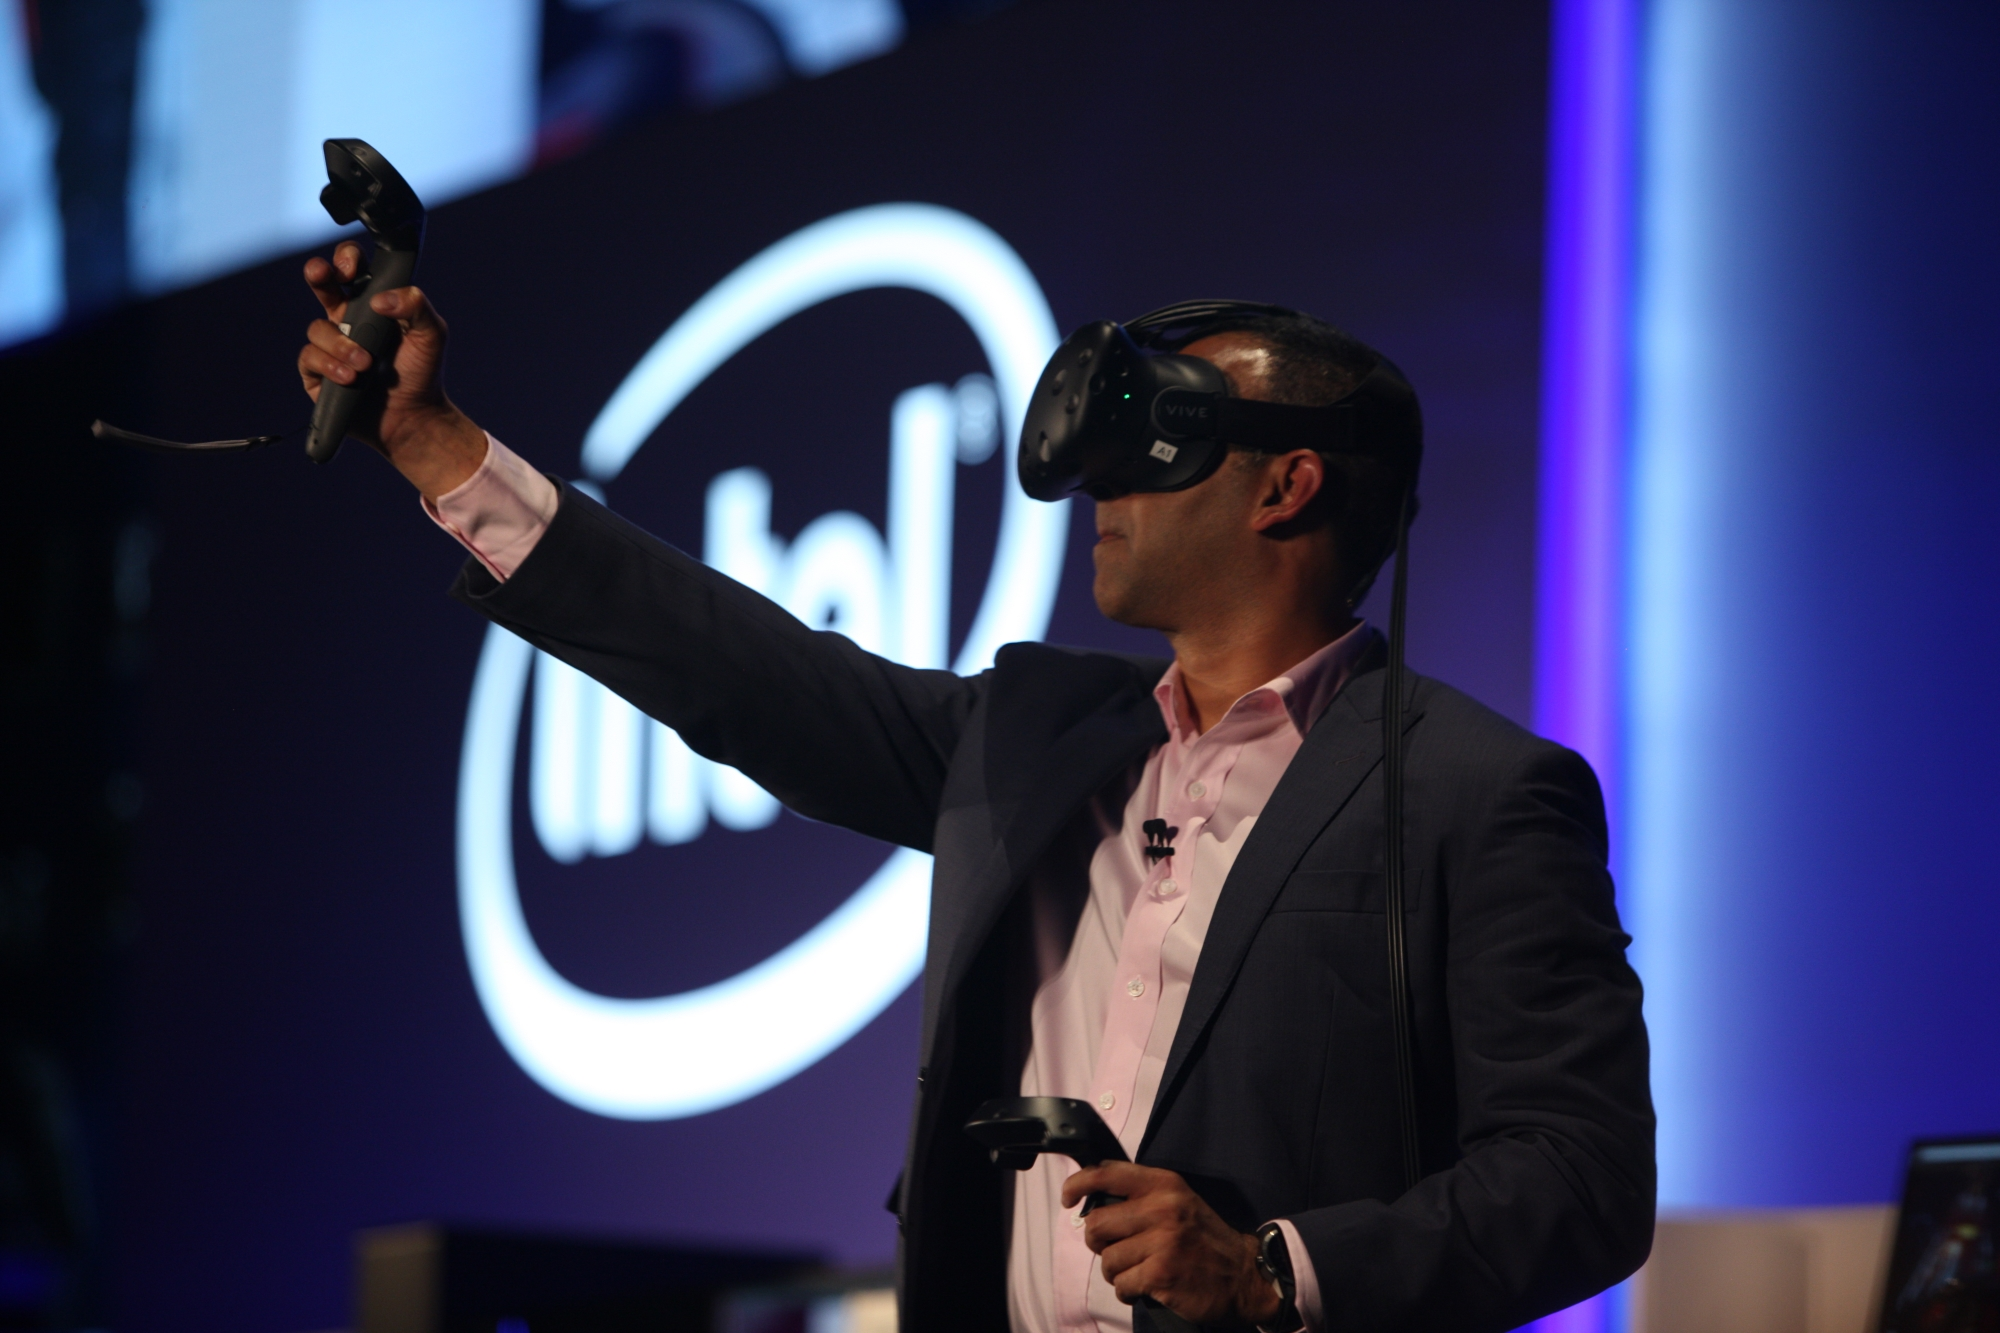 5_SHENOY WITH VR HEADSET ON-small